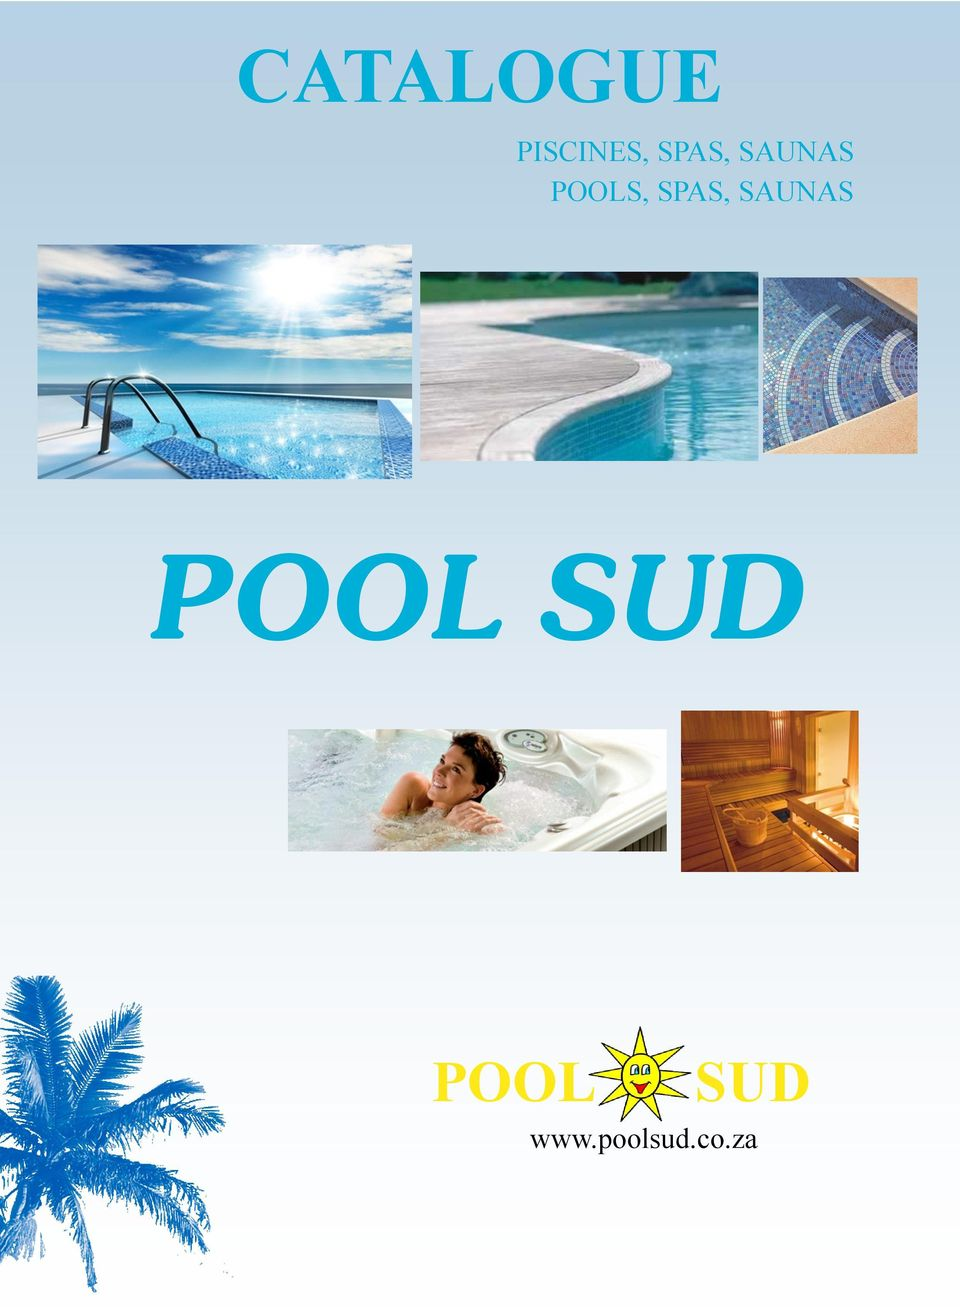 Catalogue piscines spas saunas pools spas saunas pool for Catalogue piscine